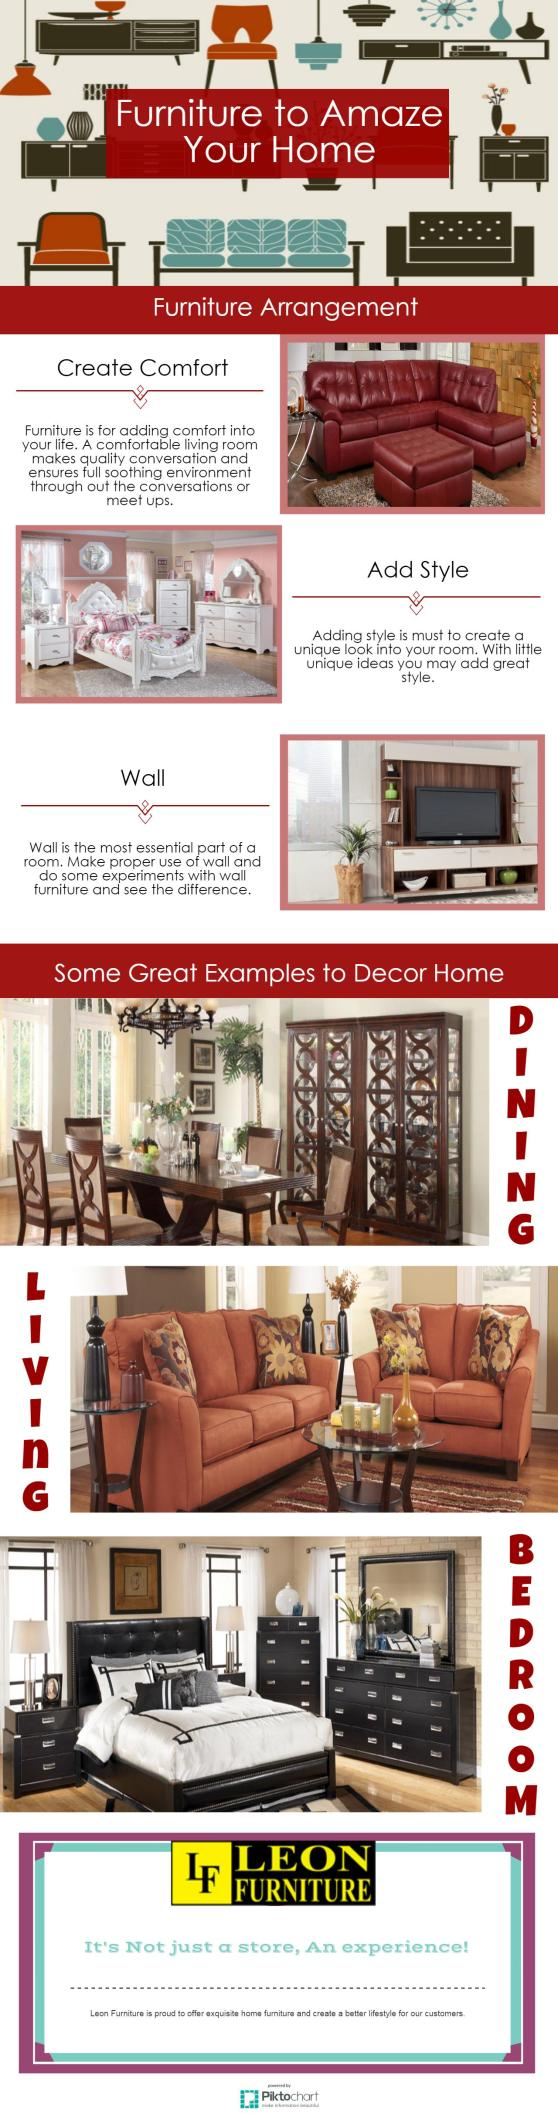 Furniture to Amaze Your Home